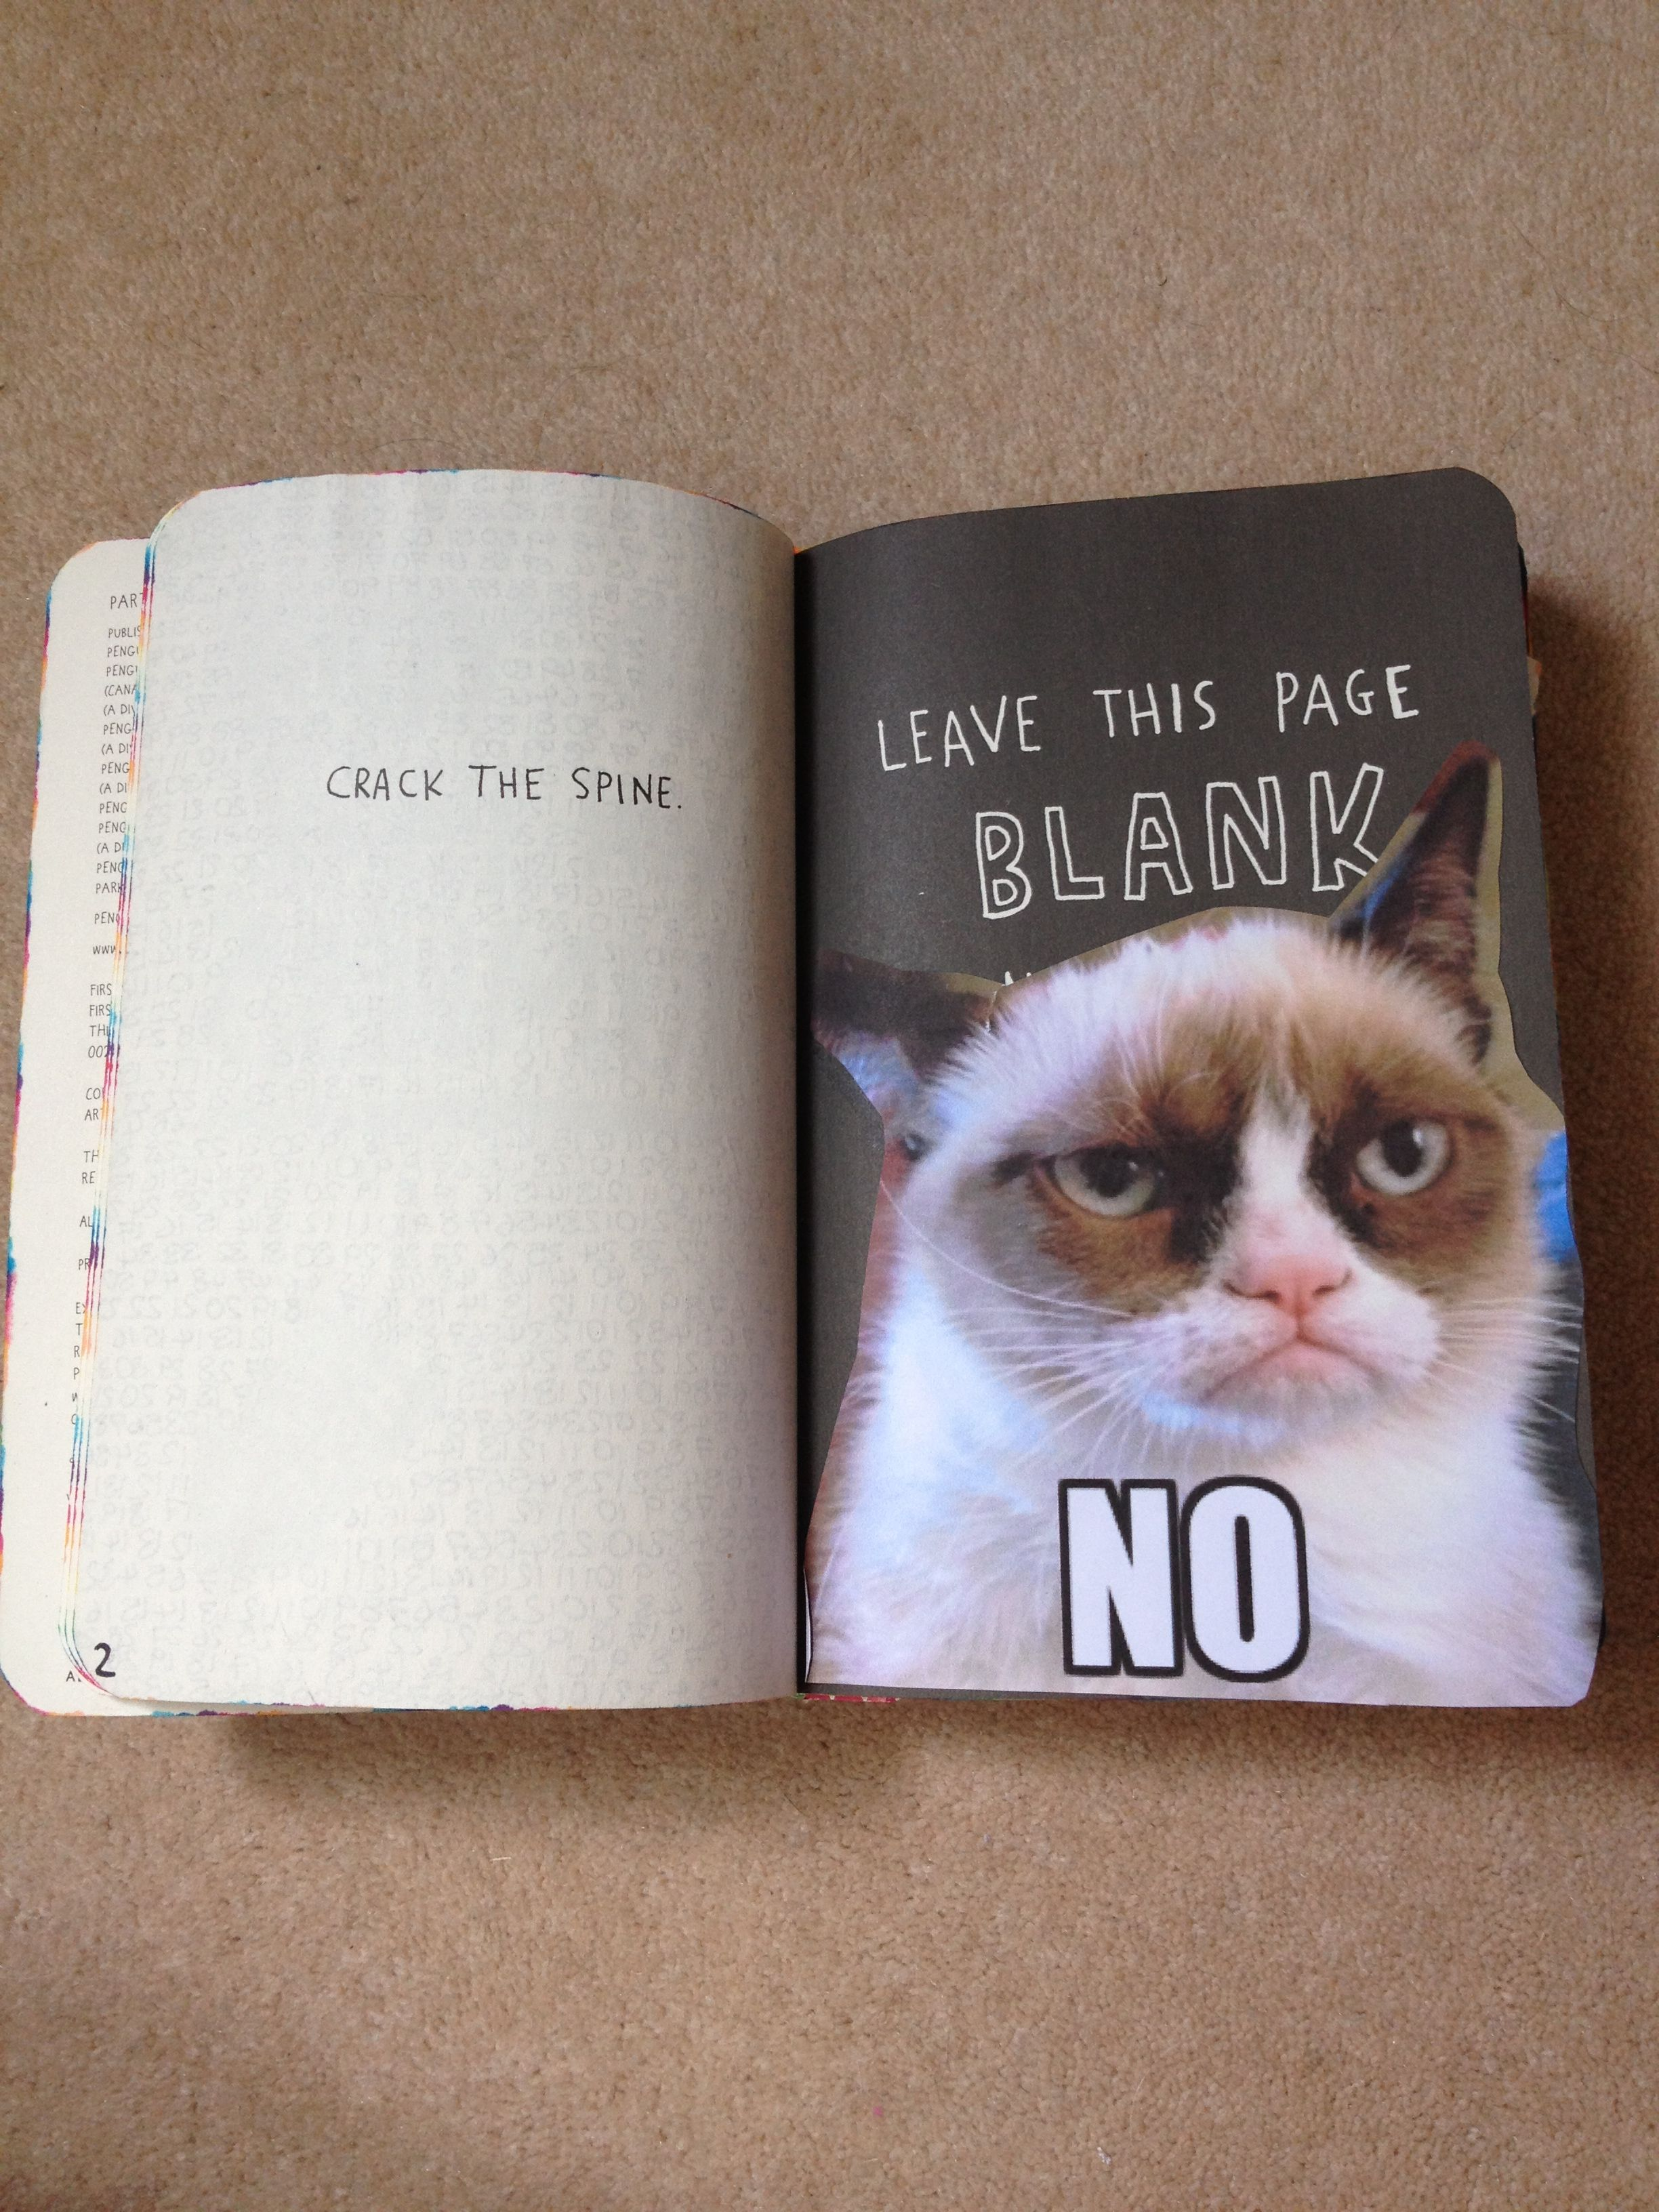 Keep this page blank (no!)...